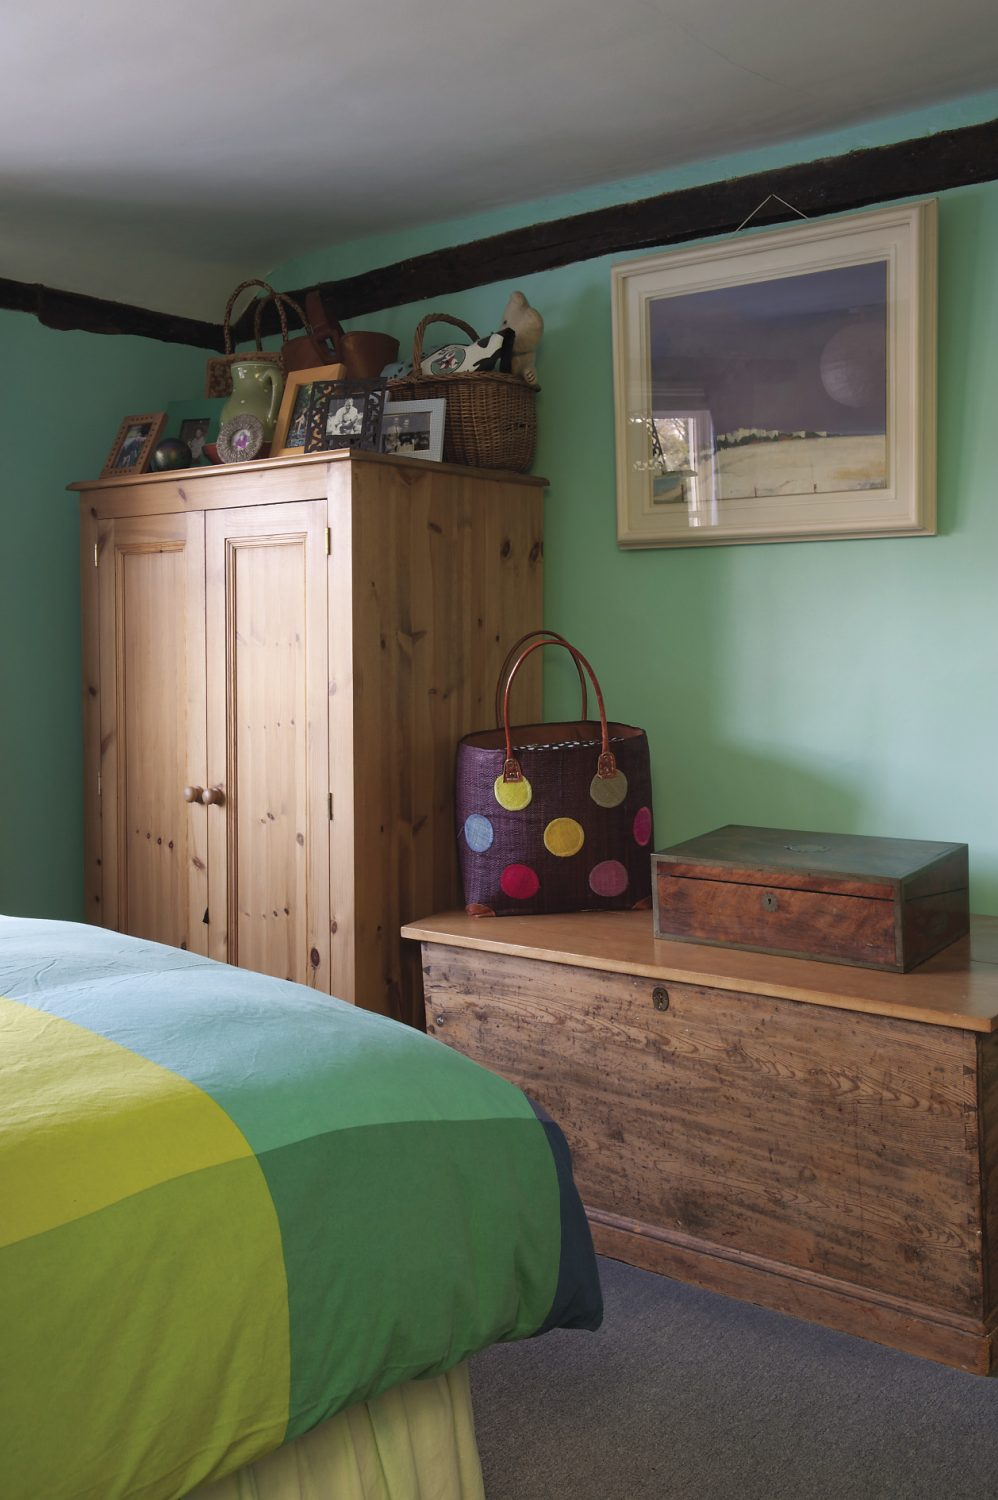 """In the master bedroom, on a scrubbed pine chest, stands a raffia shopping basket with brightly coloured spots like giant Smarties arranged over it. """"I bought that for Fiona,"""" says Oliver. """"It's never actually been used for shopping, but the colours are just irresistible."""""""